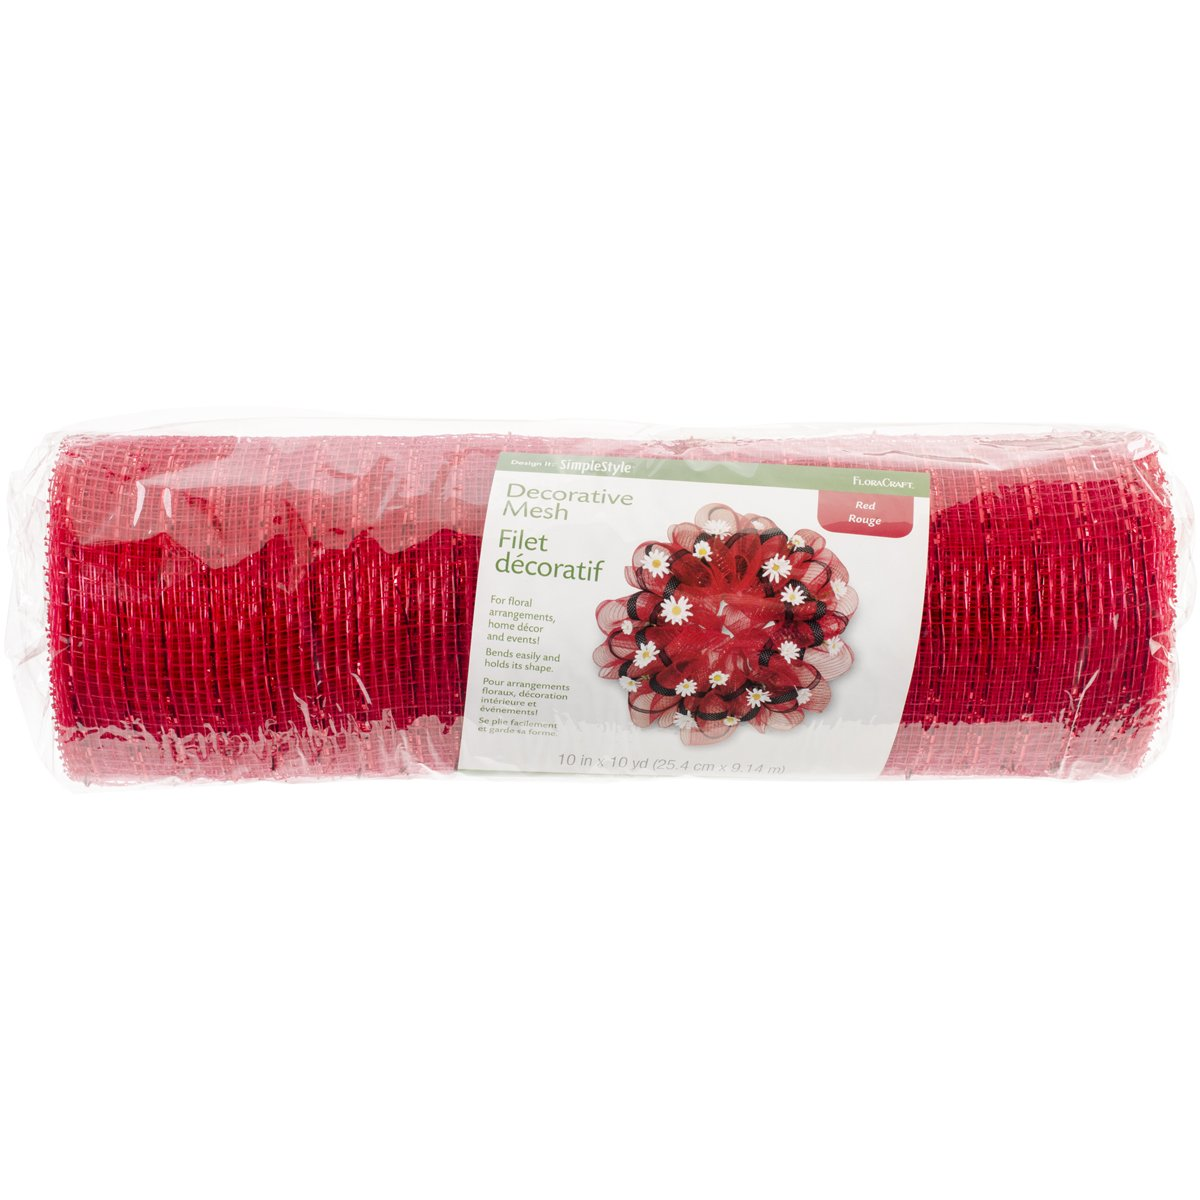 Floracraft Decorative Mesh Roll 10-inch x 10yd-Red, Other, Multicoloured Notions Marketing RS9714/6/4